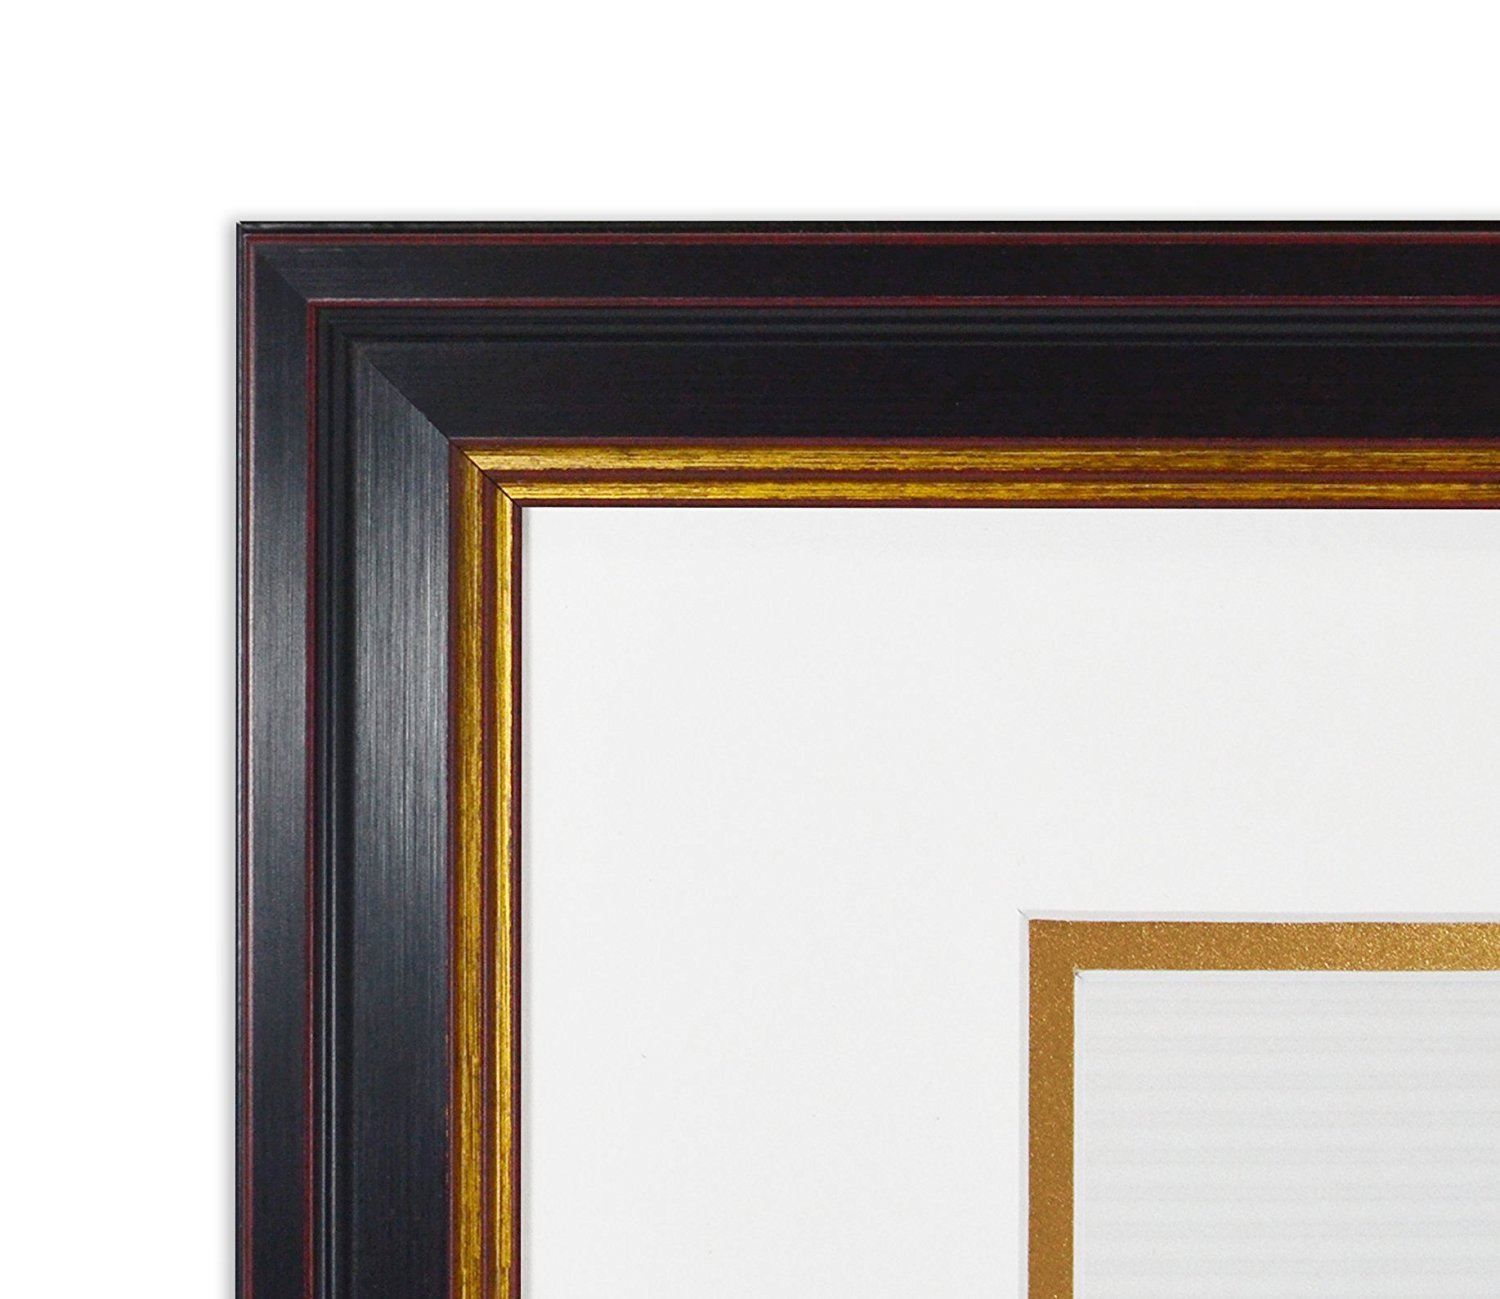 Color: Black Gold /& Burgundy Wall Hang 11x14 Photo Frame for 7x9 Certificate or Photos Golden State Art and Real Glass Includes a Double Mat White//Gold